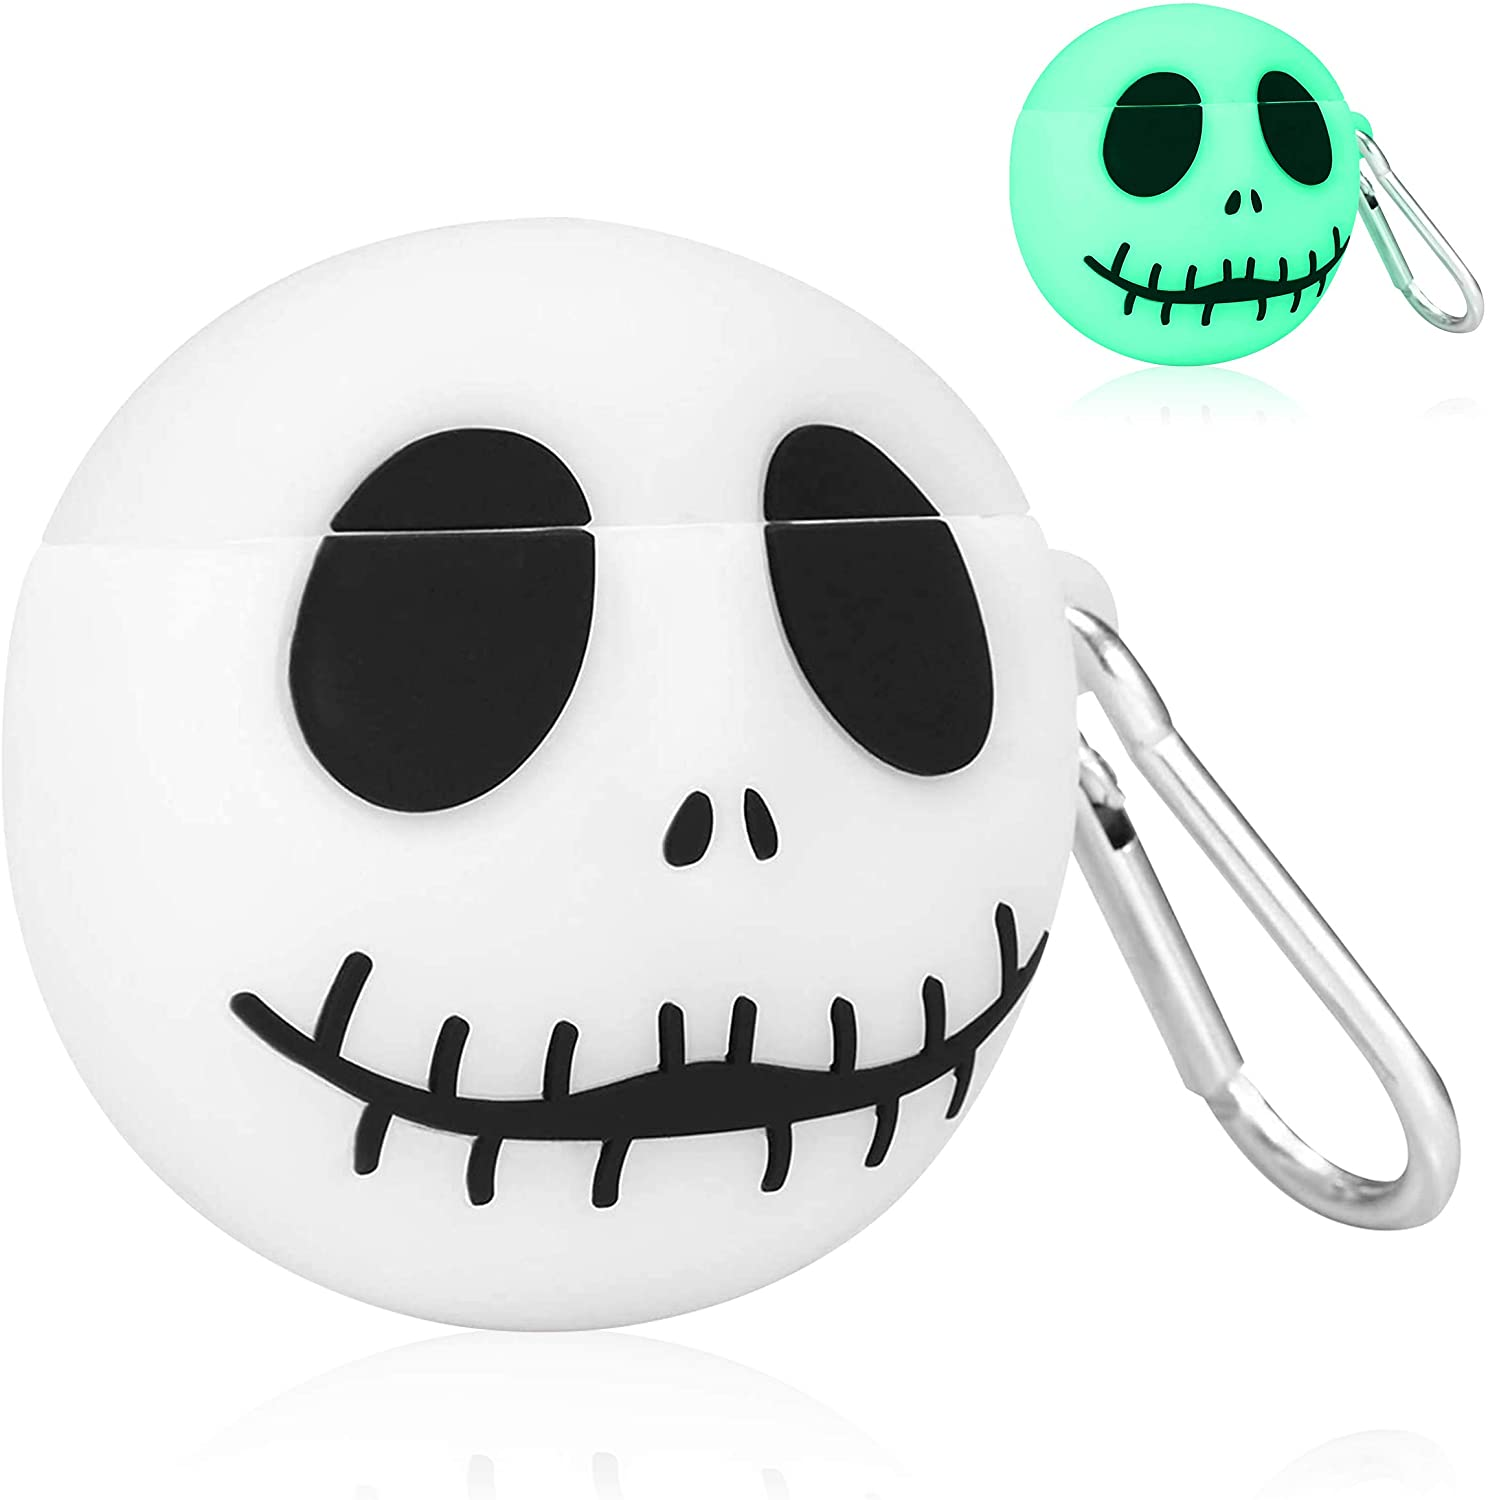 Oqplog for AirPods 2&1 Case, Protective Soft Silicone Cartoon Cute Fun Fashion Cover for Girls Teens Kids Boys Air Pods, Stylish Cool Design Skin Accessories Cases for Airpod 1/2 - Luminous Skull